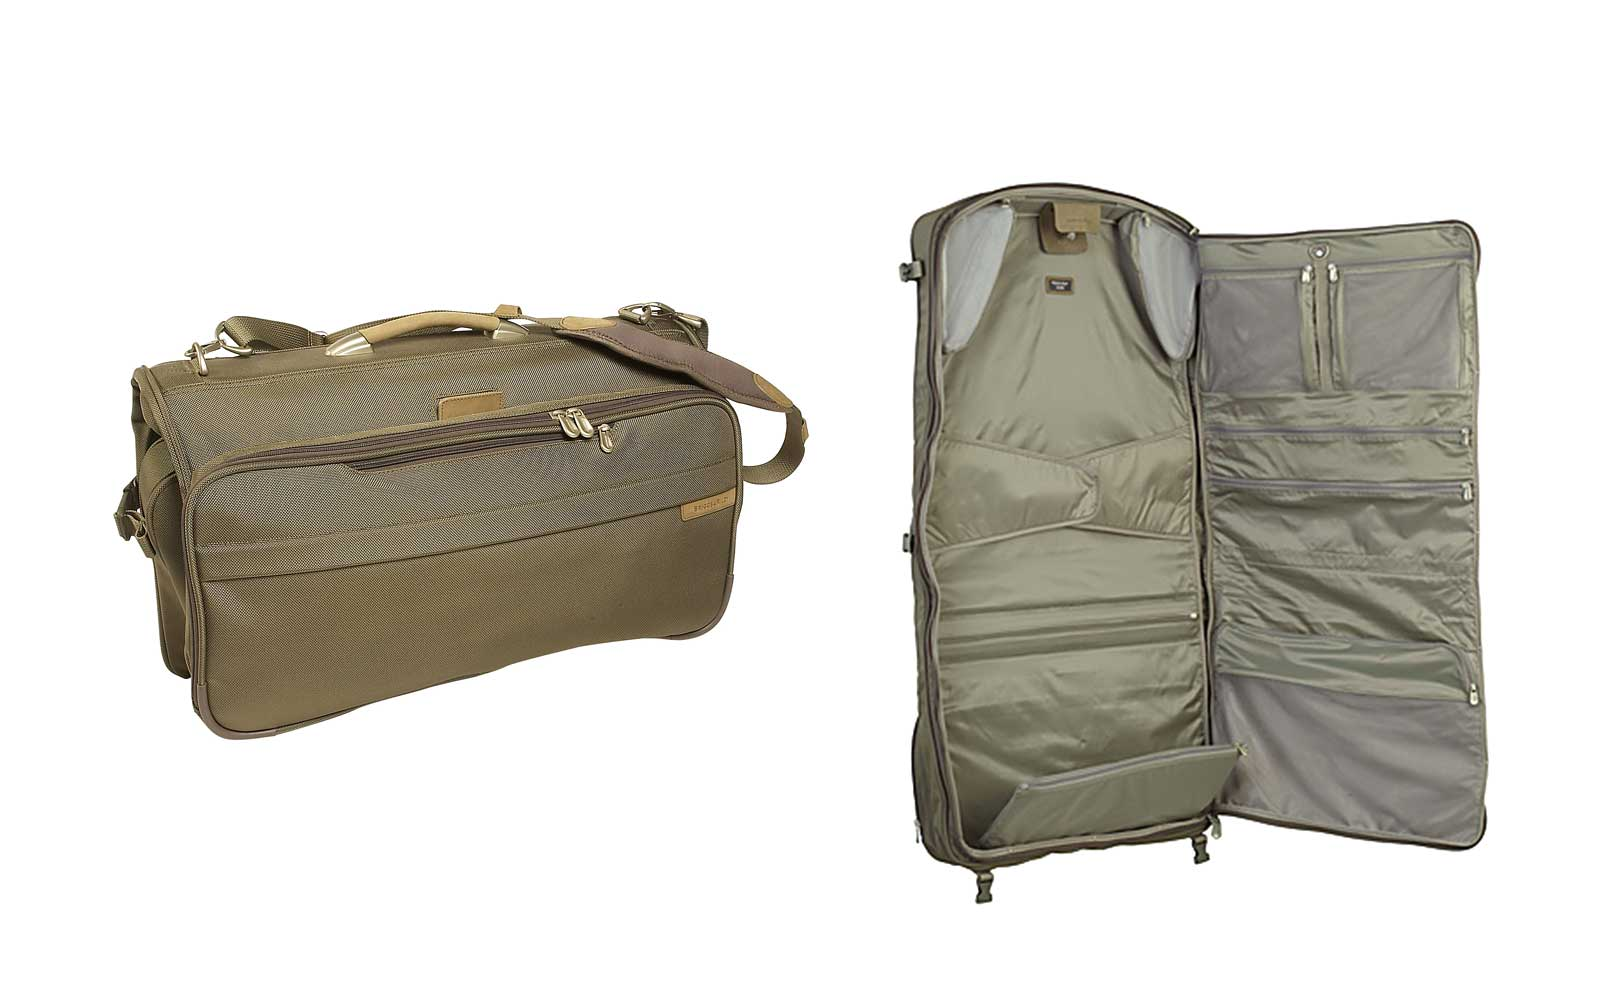 f1cdb33171 The Best Garment Bags for Travel | Travel + Leisure